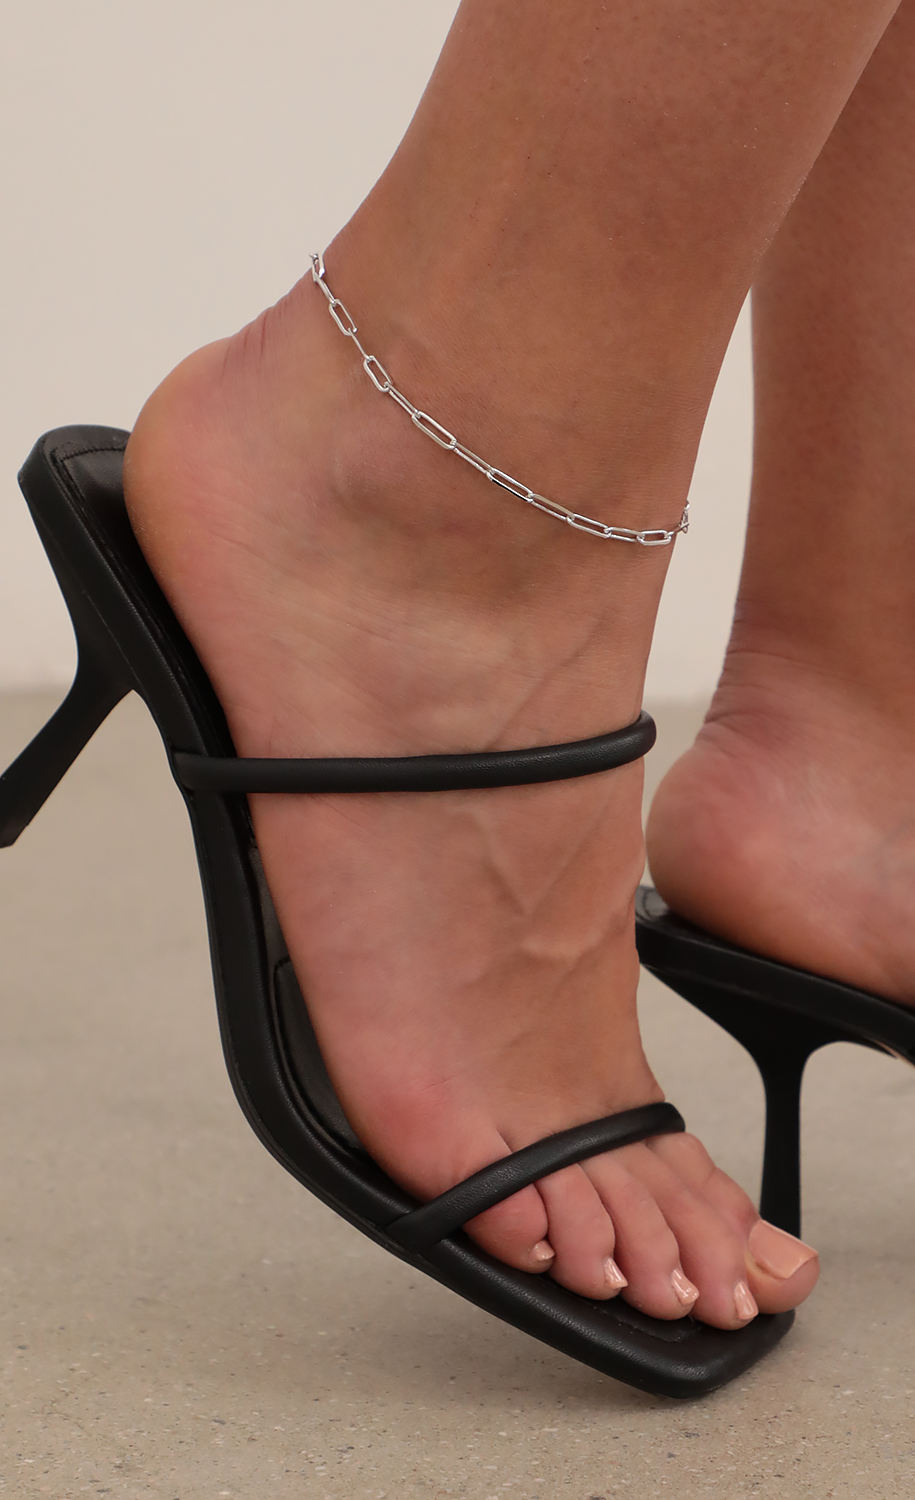 Dainty Paperclip Silver Chain Anklet